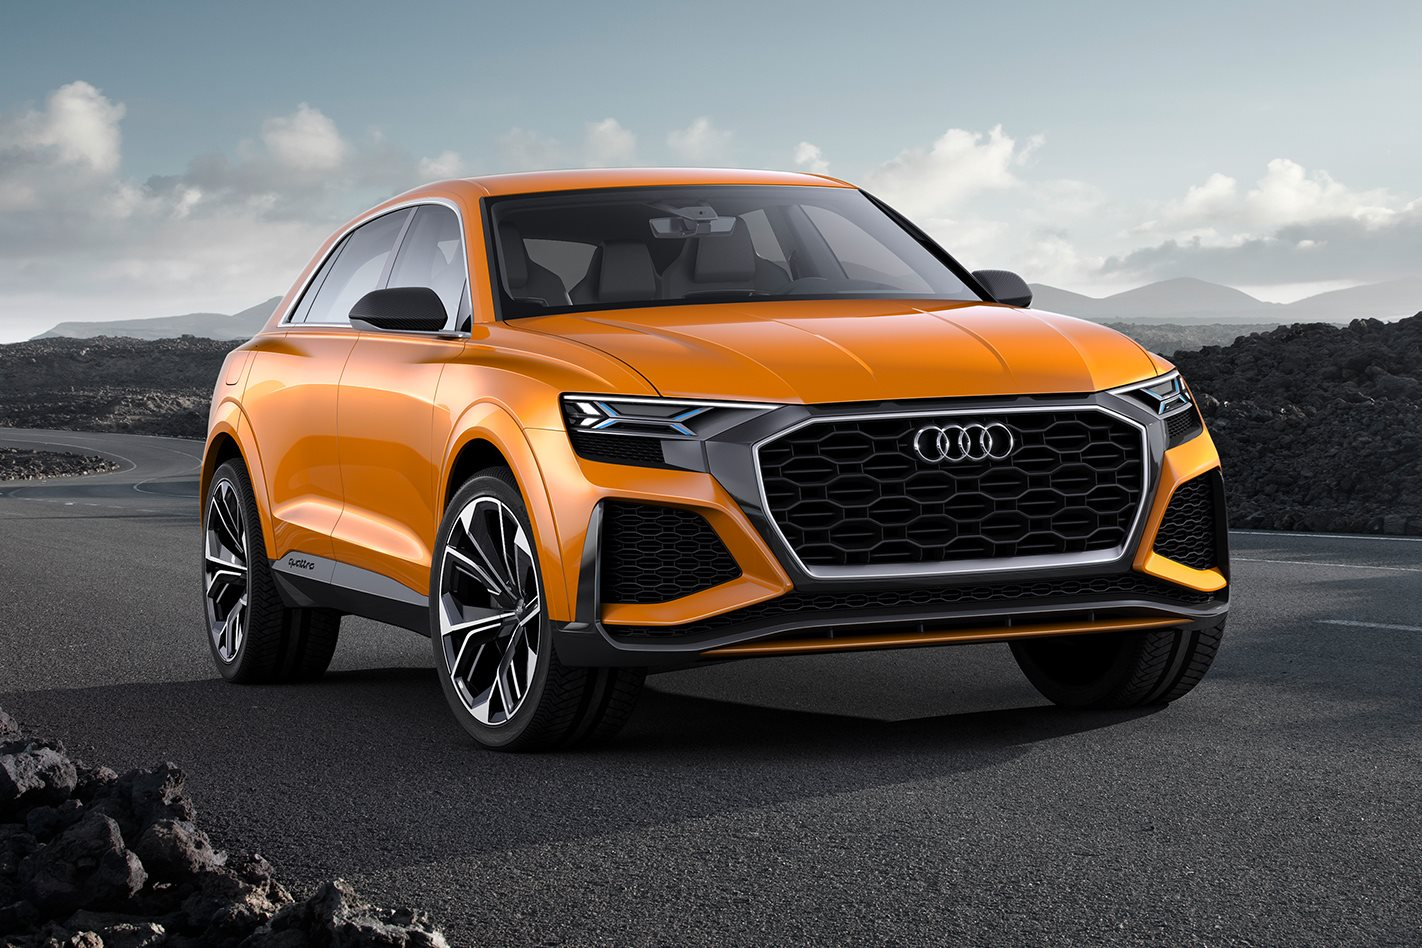 2017 audi q8 2018 audi q4 added to production lines wheels. Black Bedroom Furniture Sets. Home Design Ideas